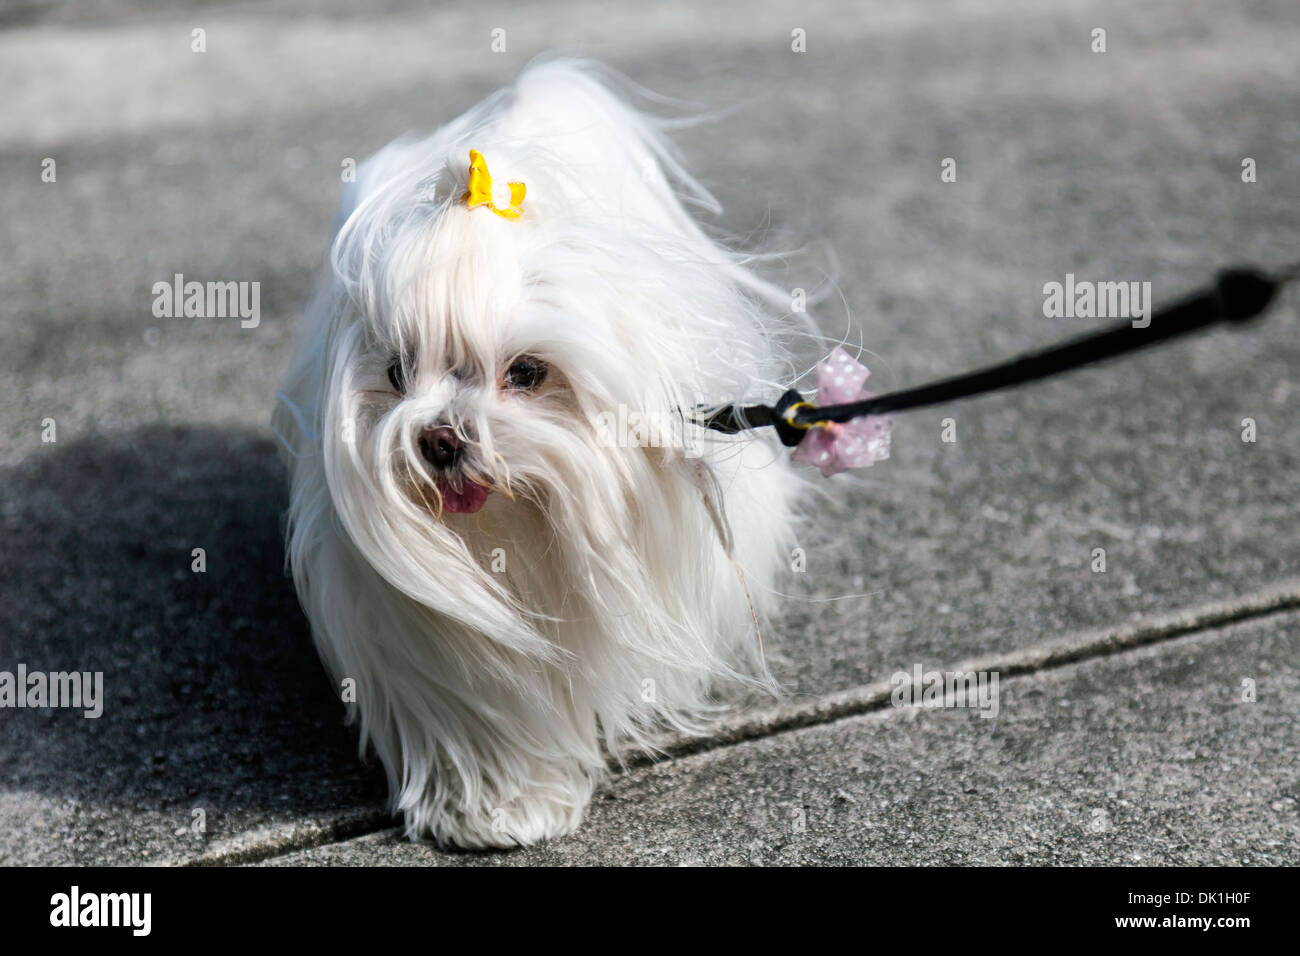 silky dog white. small maltese dog with long, silky white hair, yellow and pink polka dotted bows, out for an afternoon walk in ft. lauderdale. g